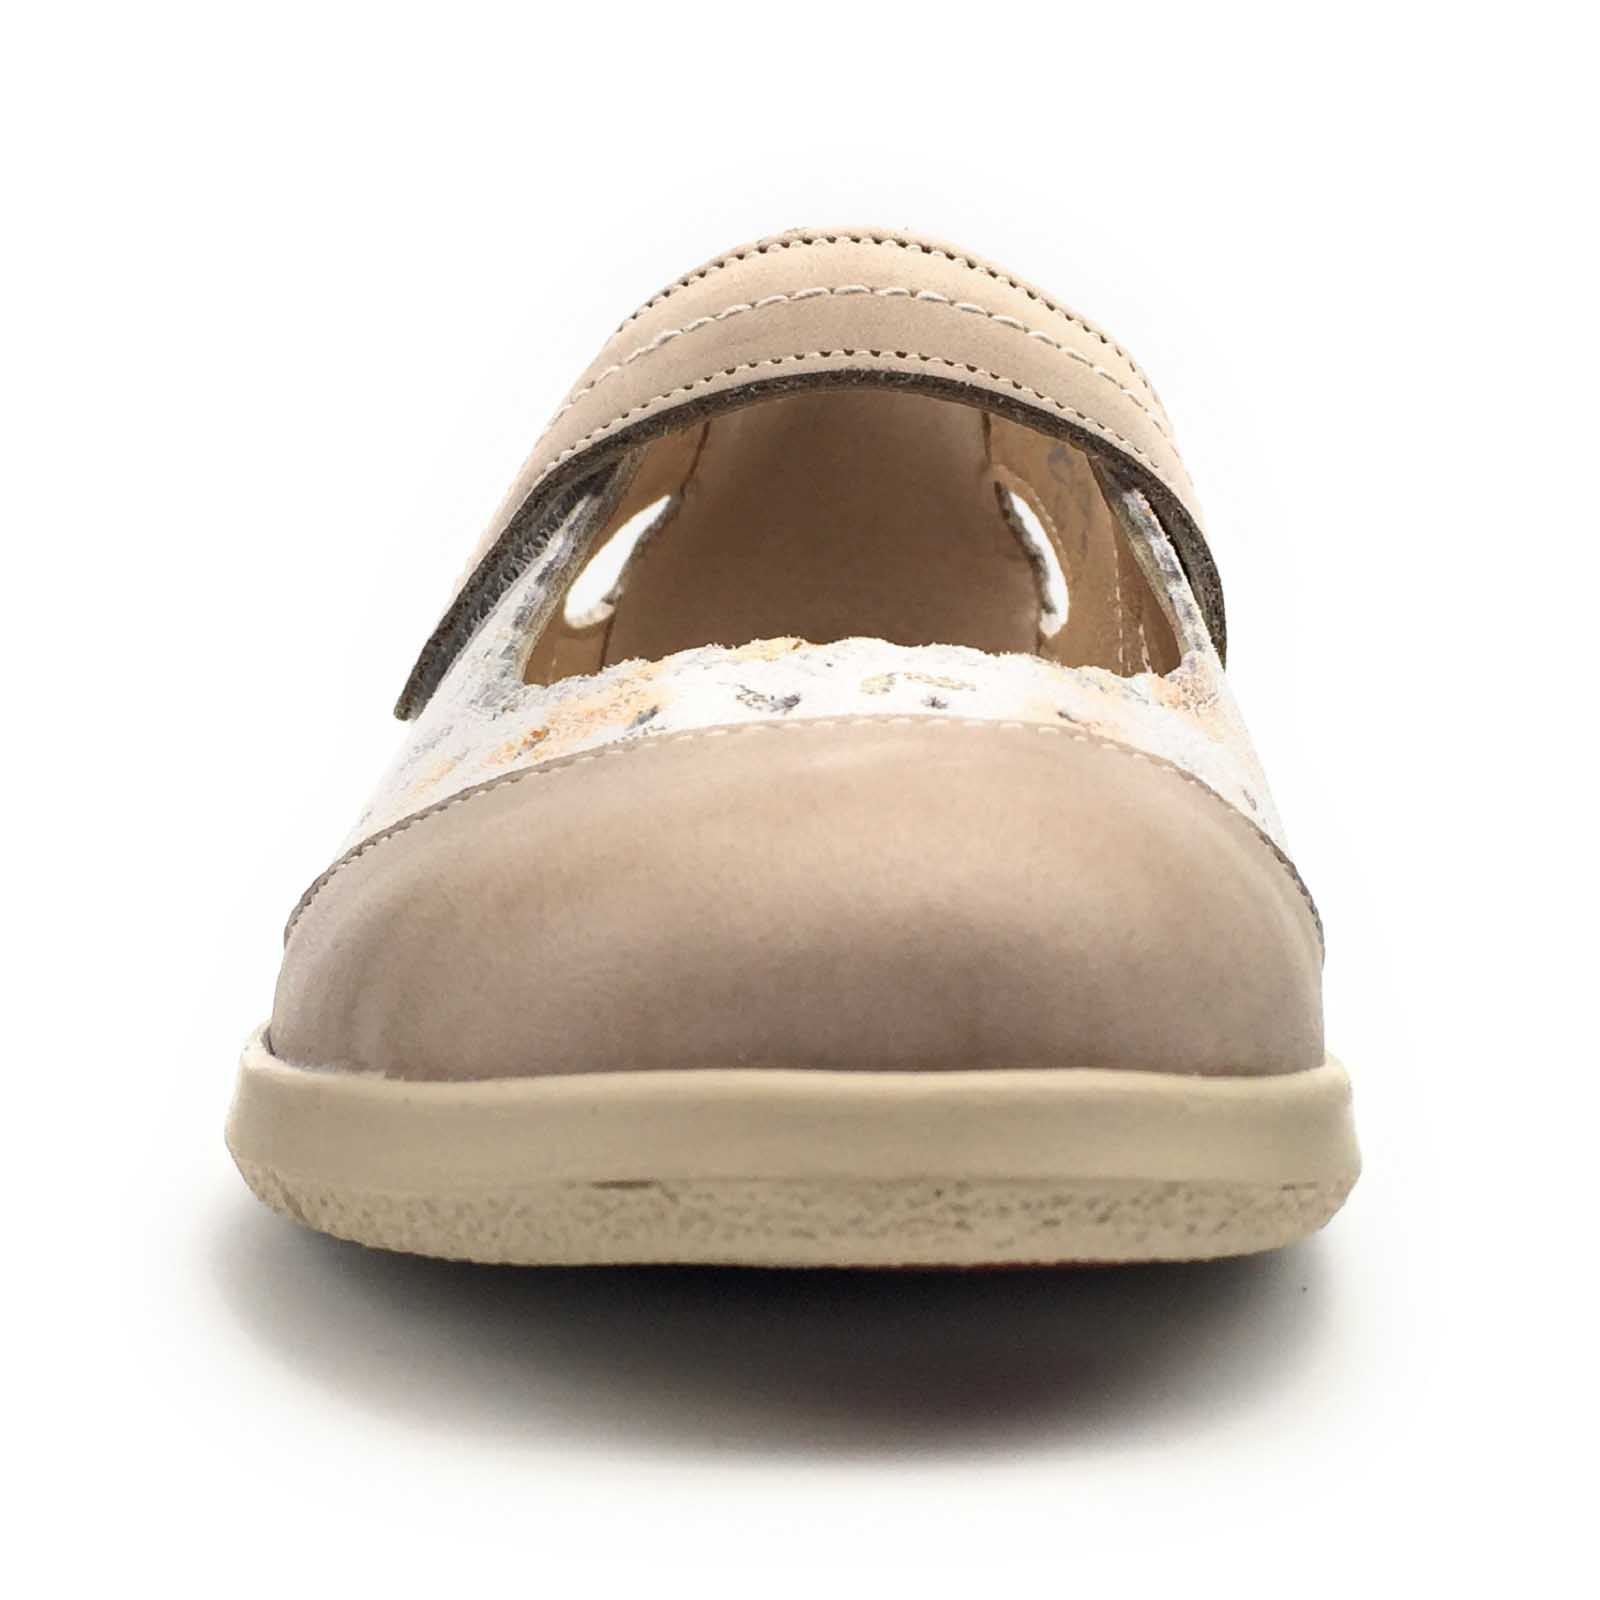 Suave mary janes 6640ms beige8061601_2